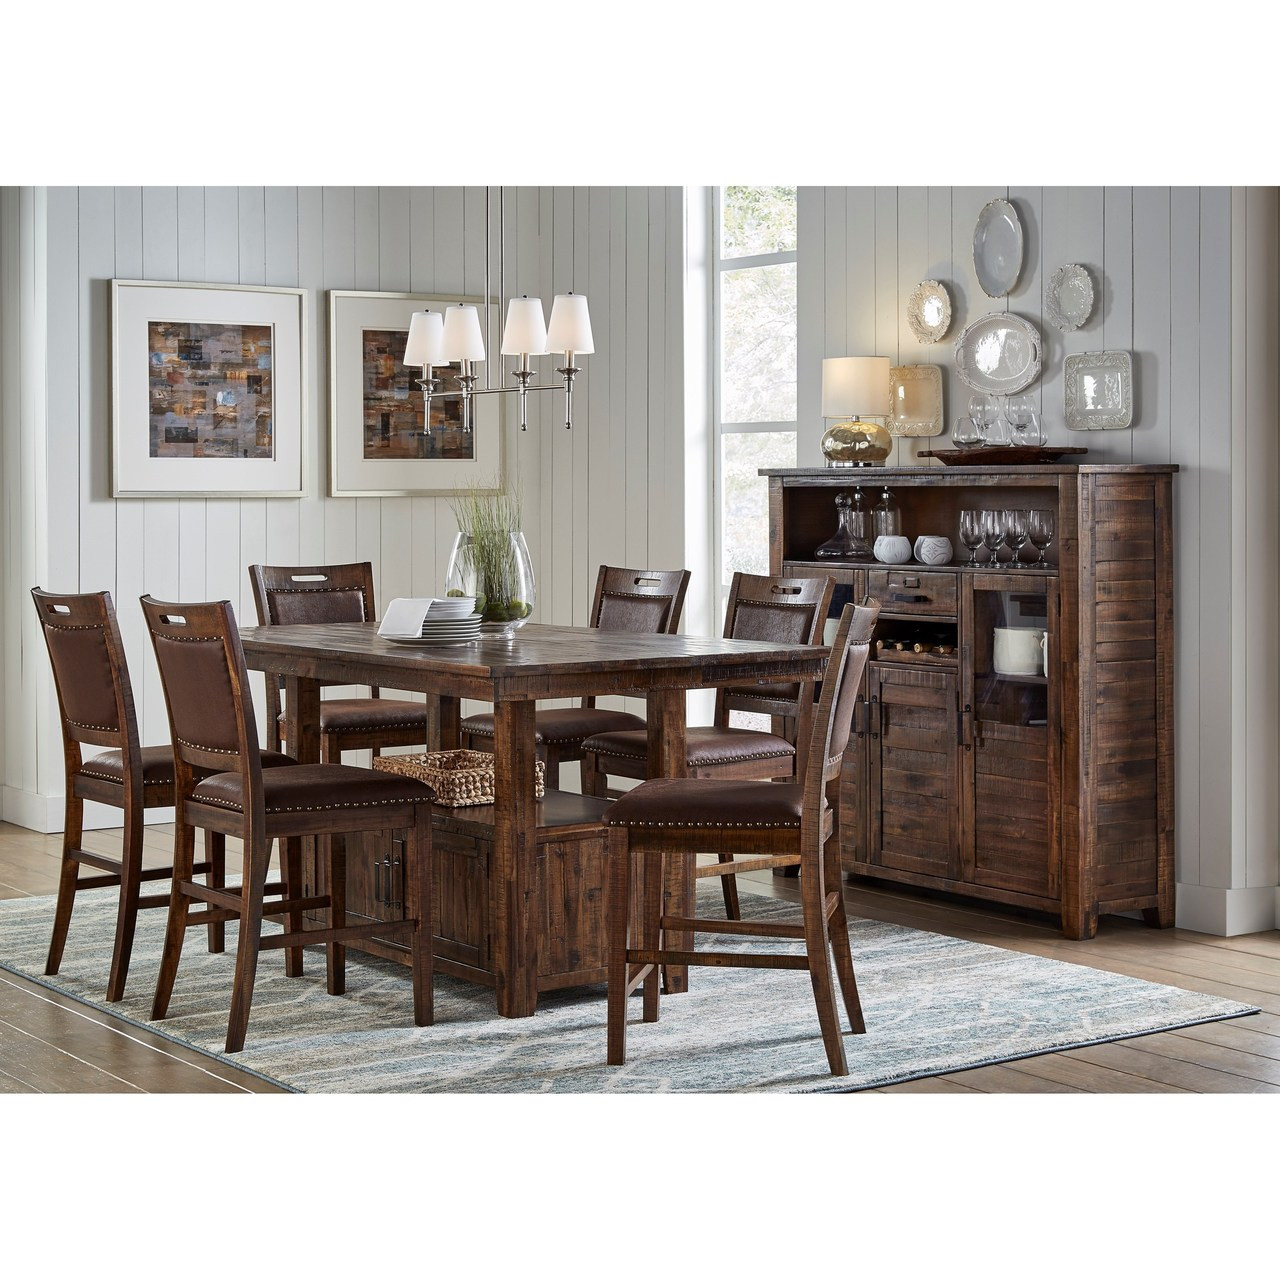 Cannon Valley 7-Piece Dining Set (Includes Storage Table and 6 Chairs)